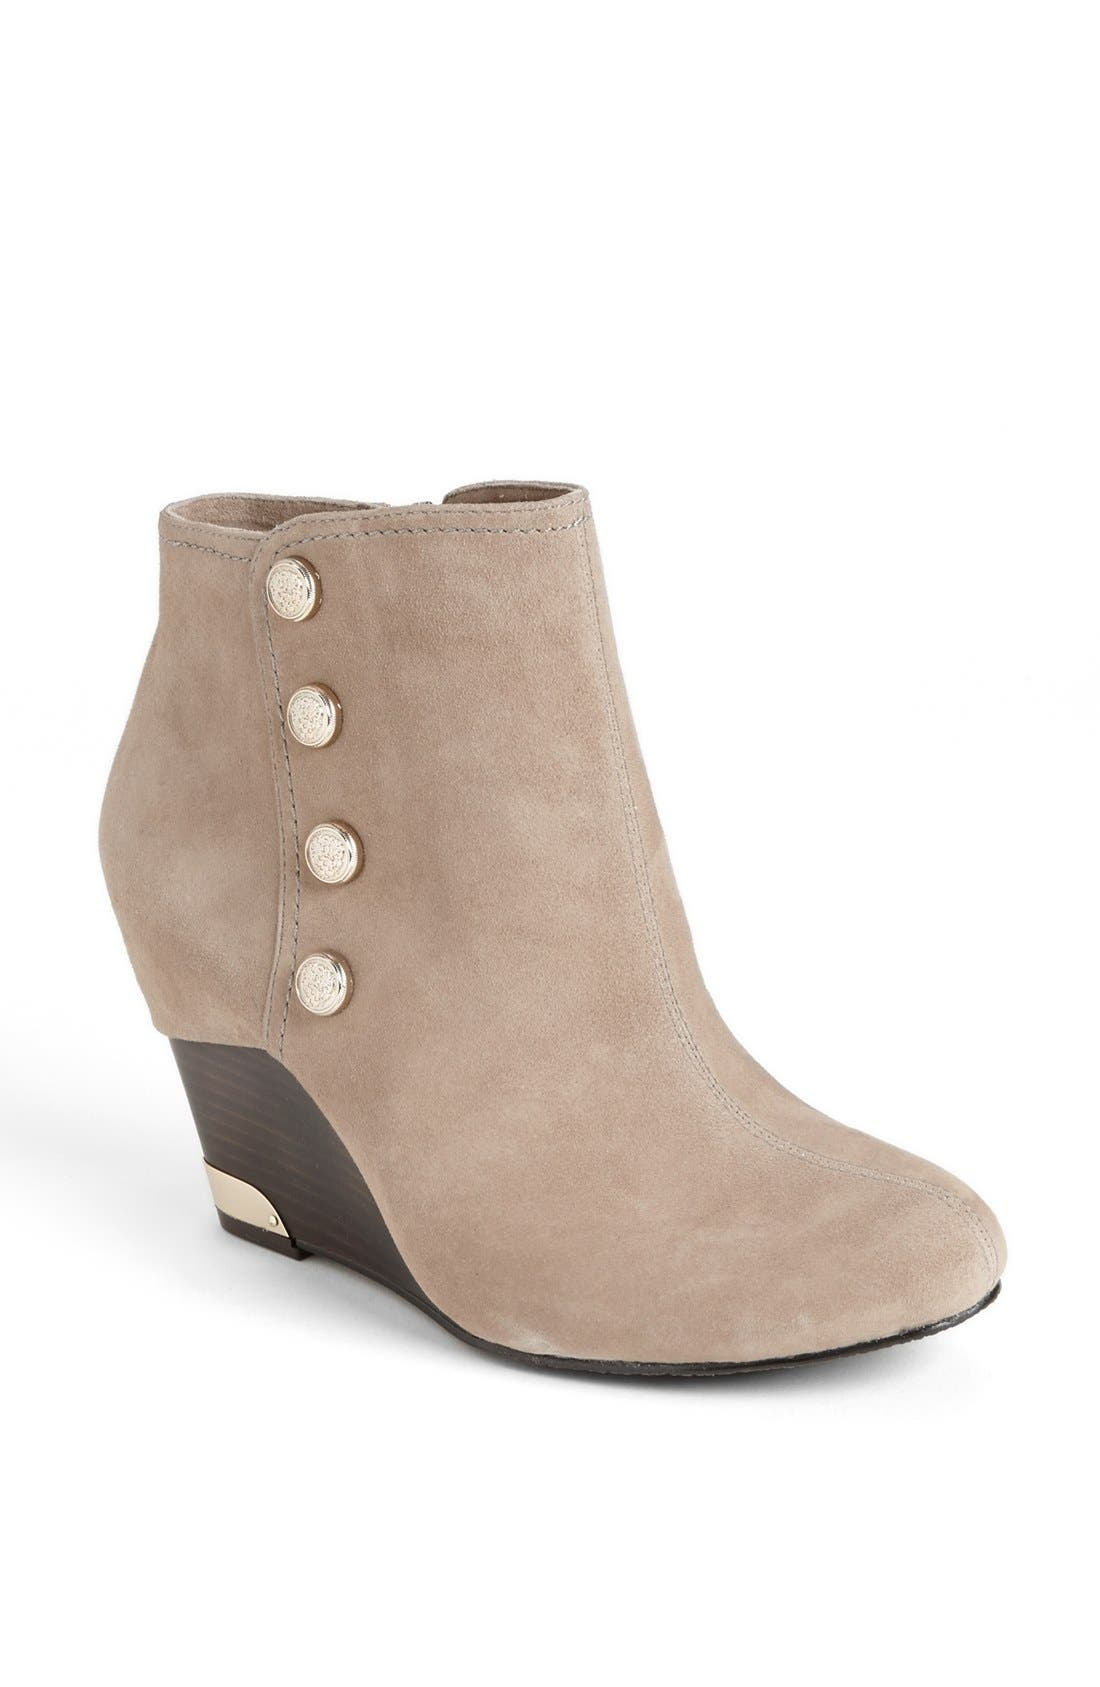 Alternate Image 1 Selected - Vince Camuto 'Huxley' Wedge Bootie